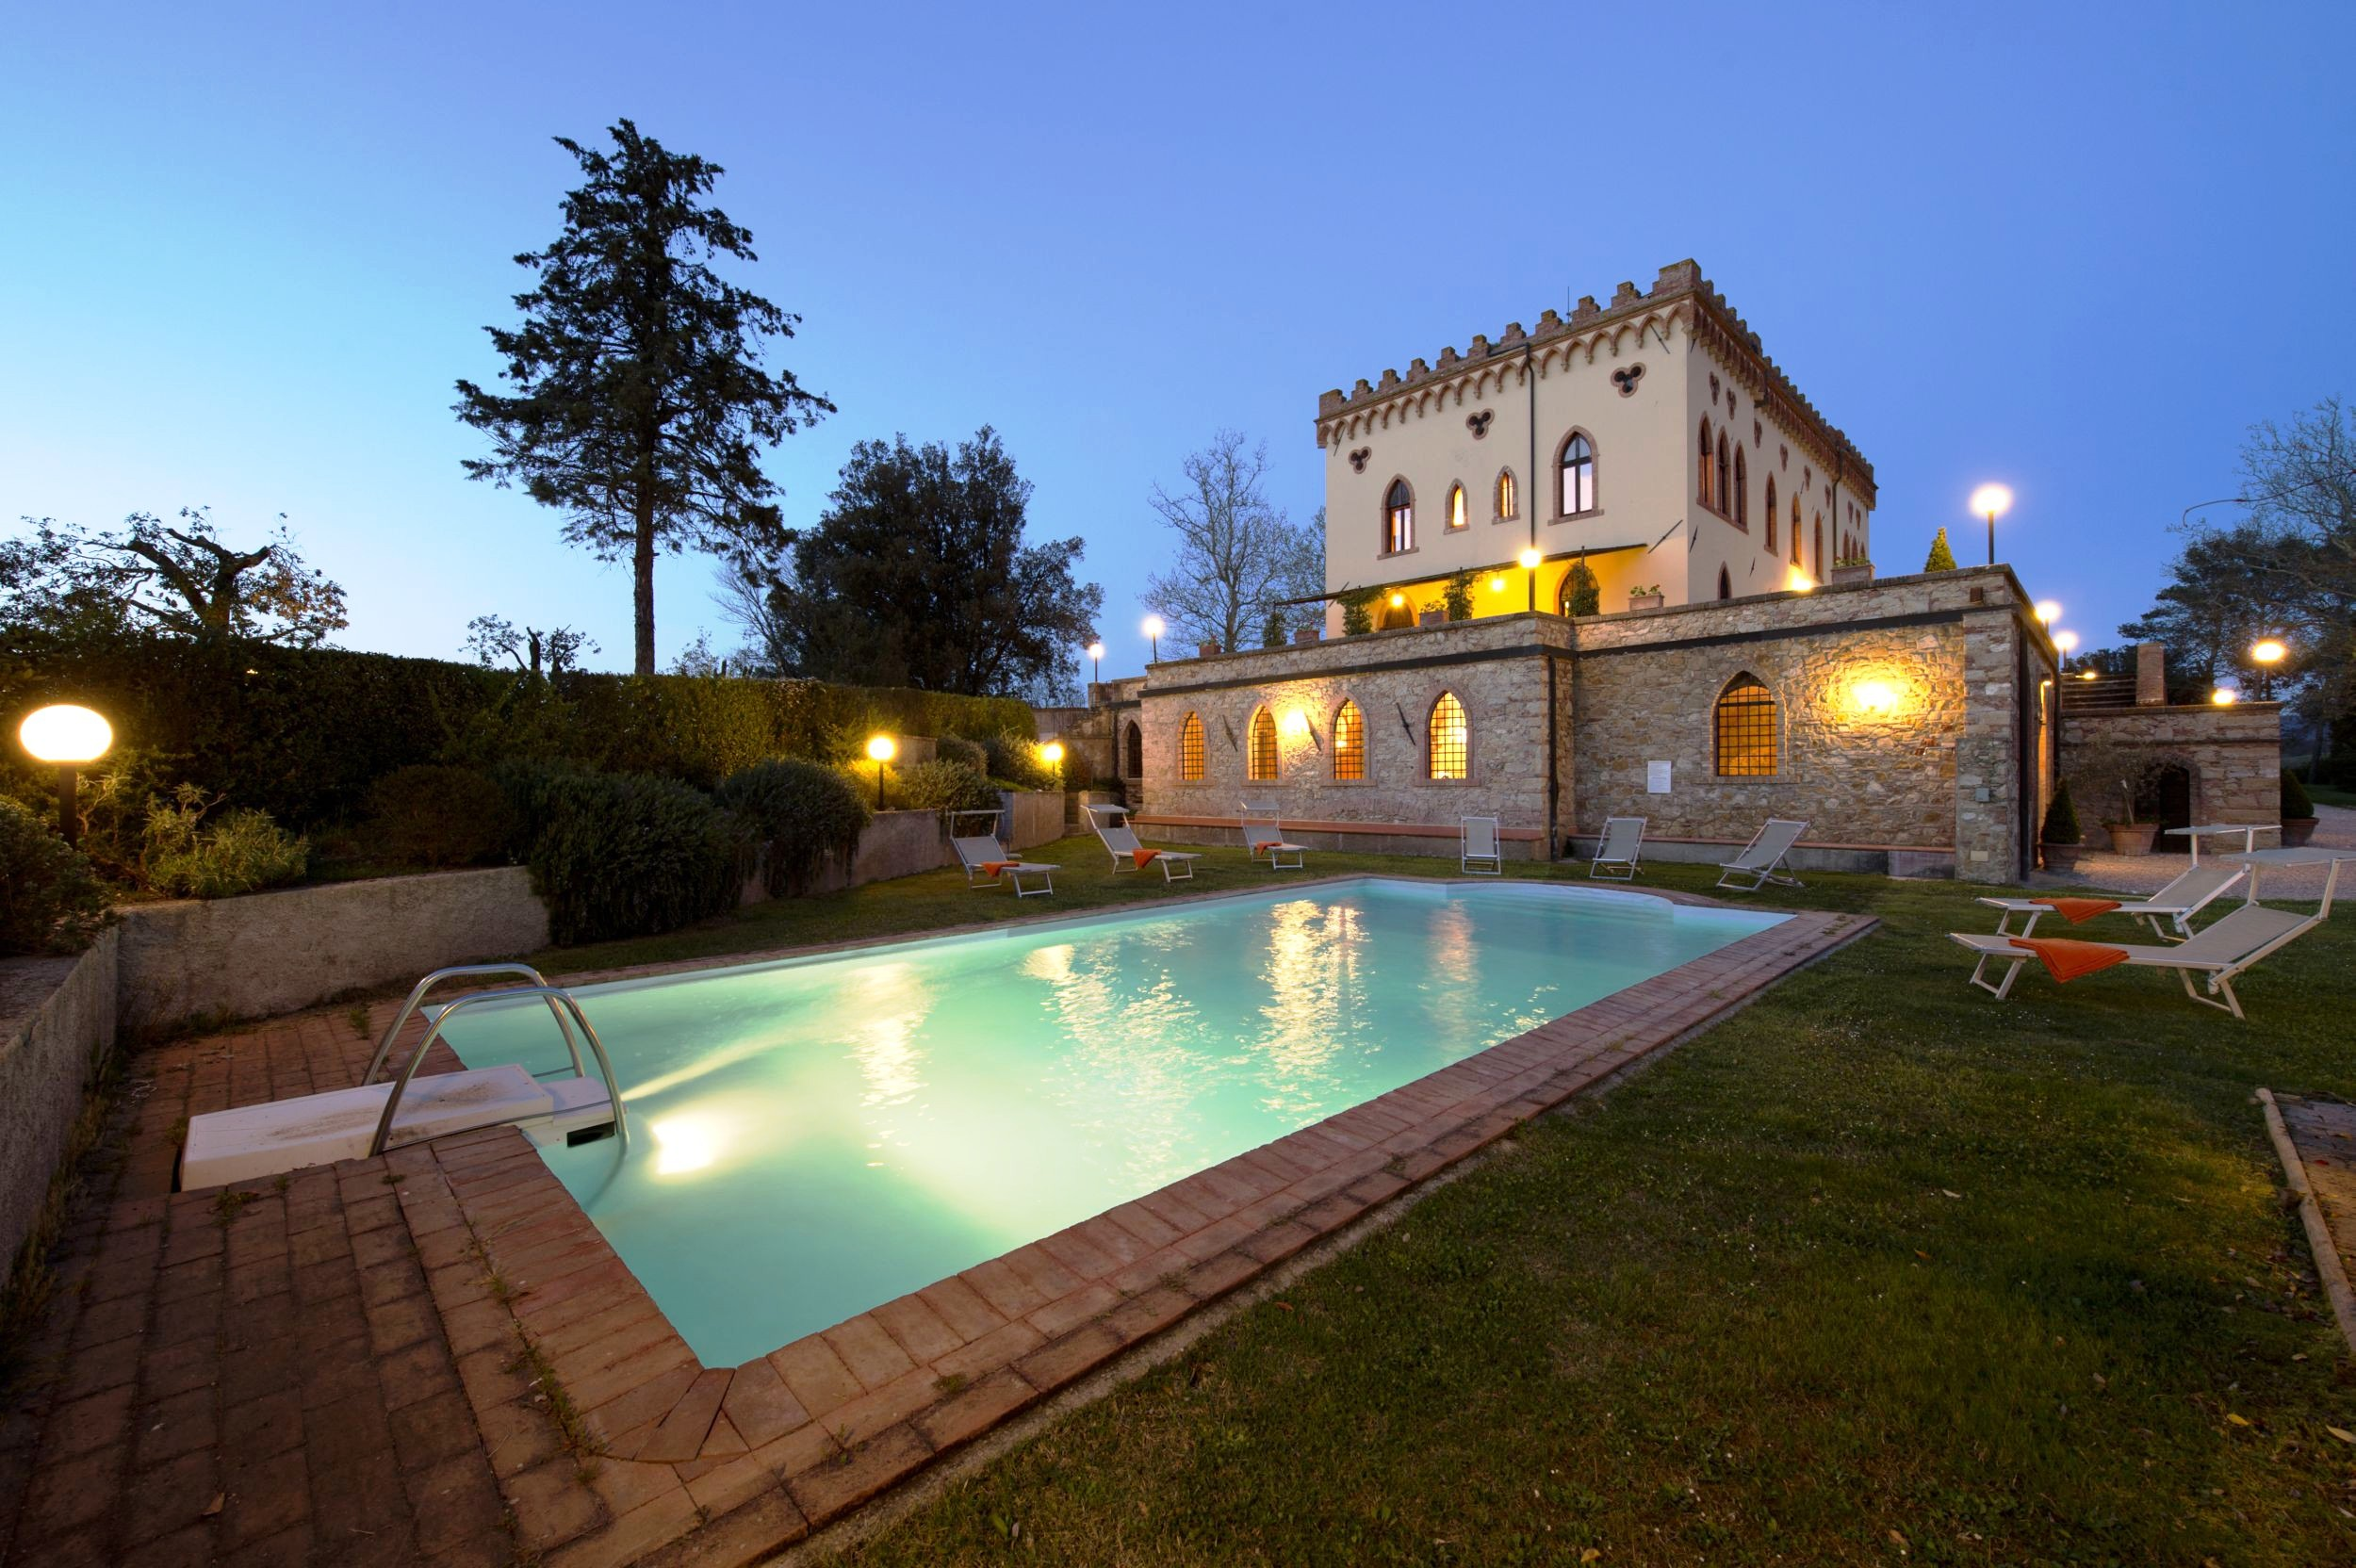 Tuscany casaliotravel for Villas corona